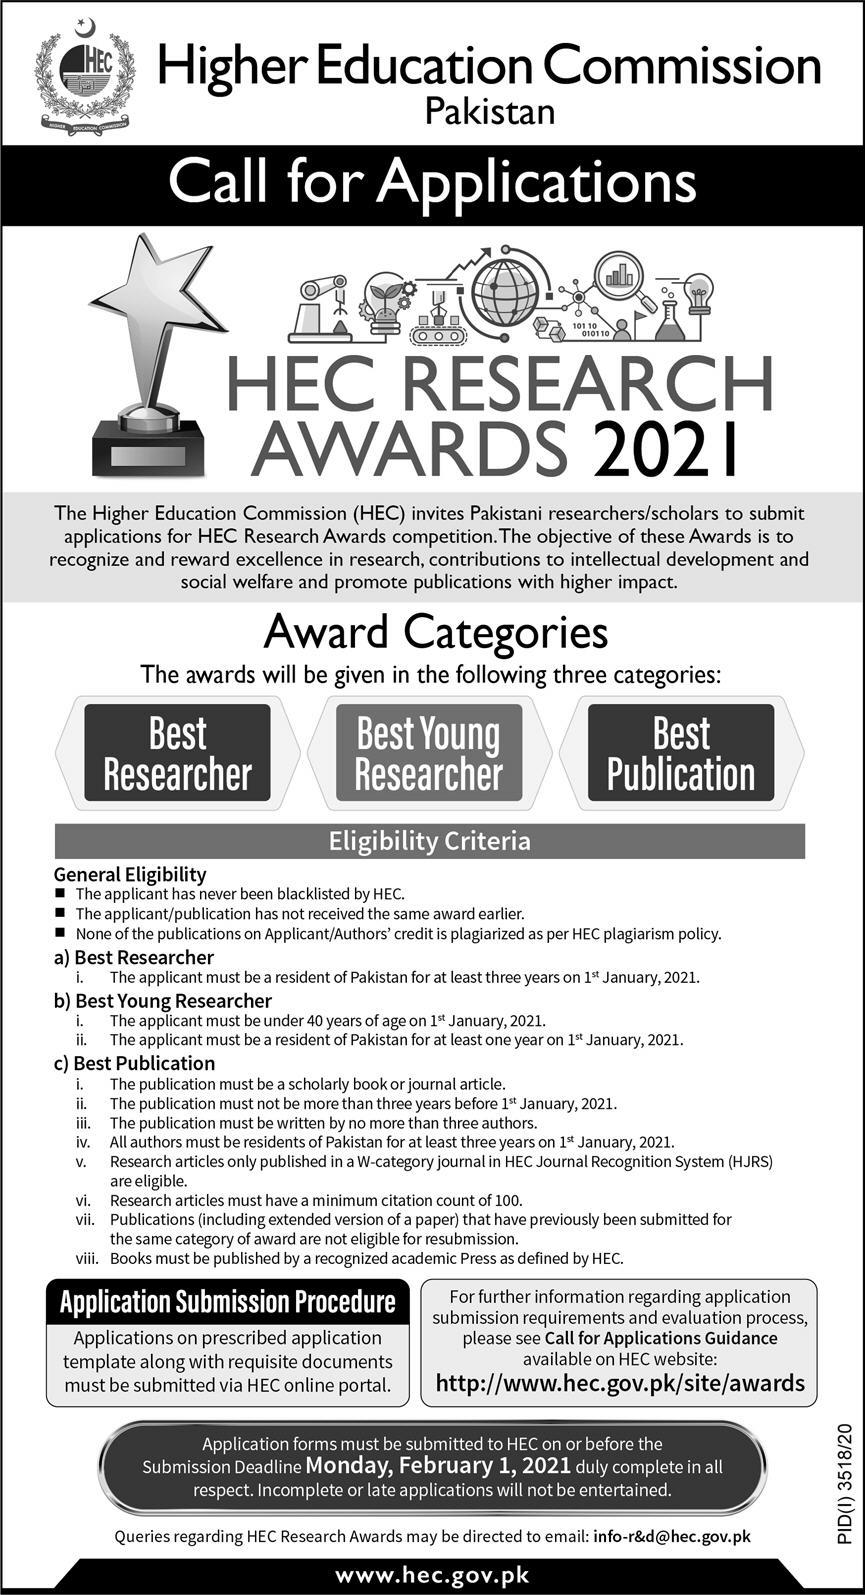 Higher Education Commission (HEC) Research Awards competition 2021